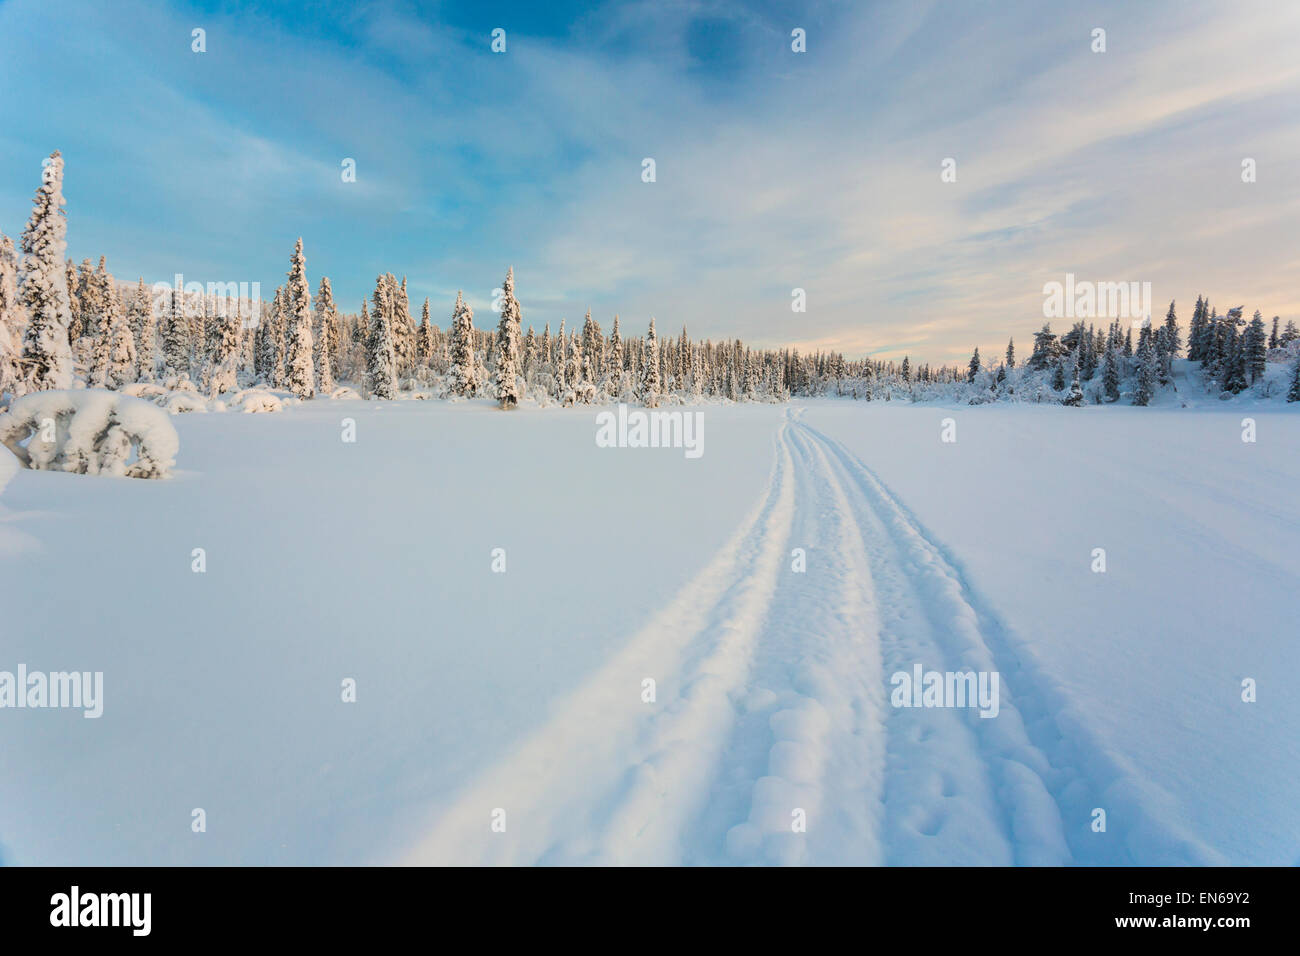 Beautifully winter landscape with plenty of snow and snow on the trees, and a snowmobile track, Gällivare Sweden - Stock Image